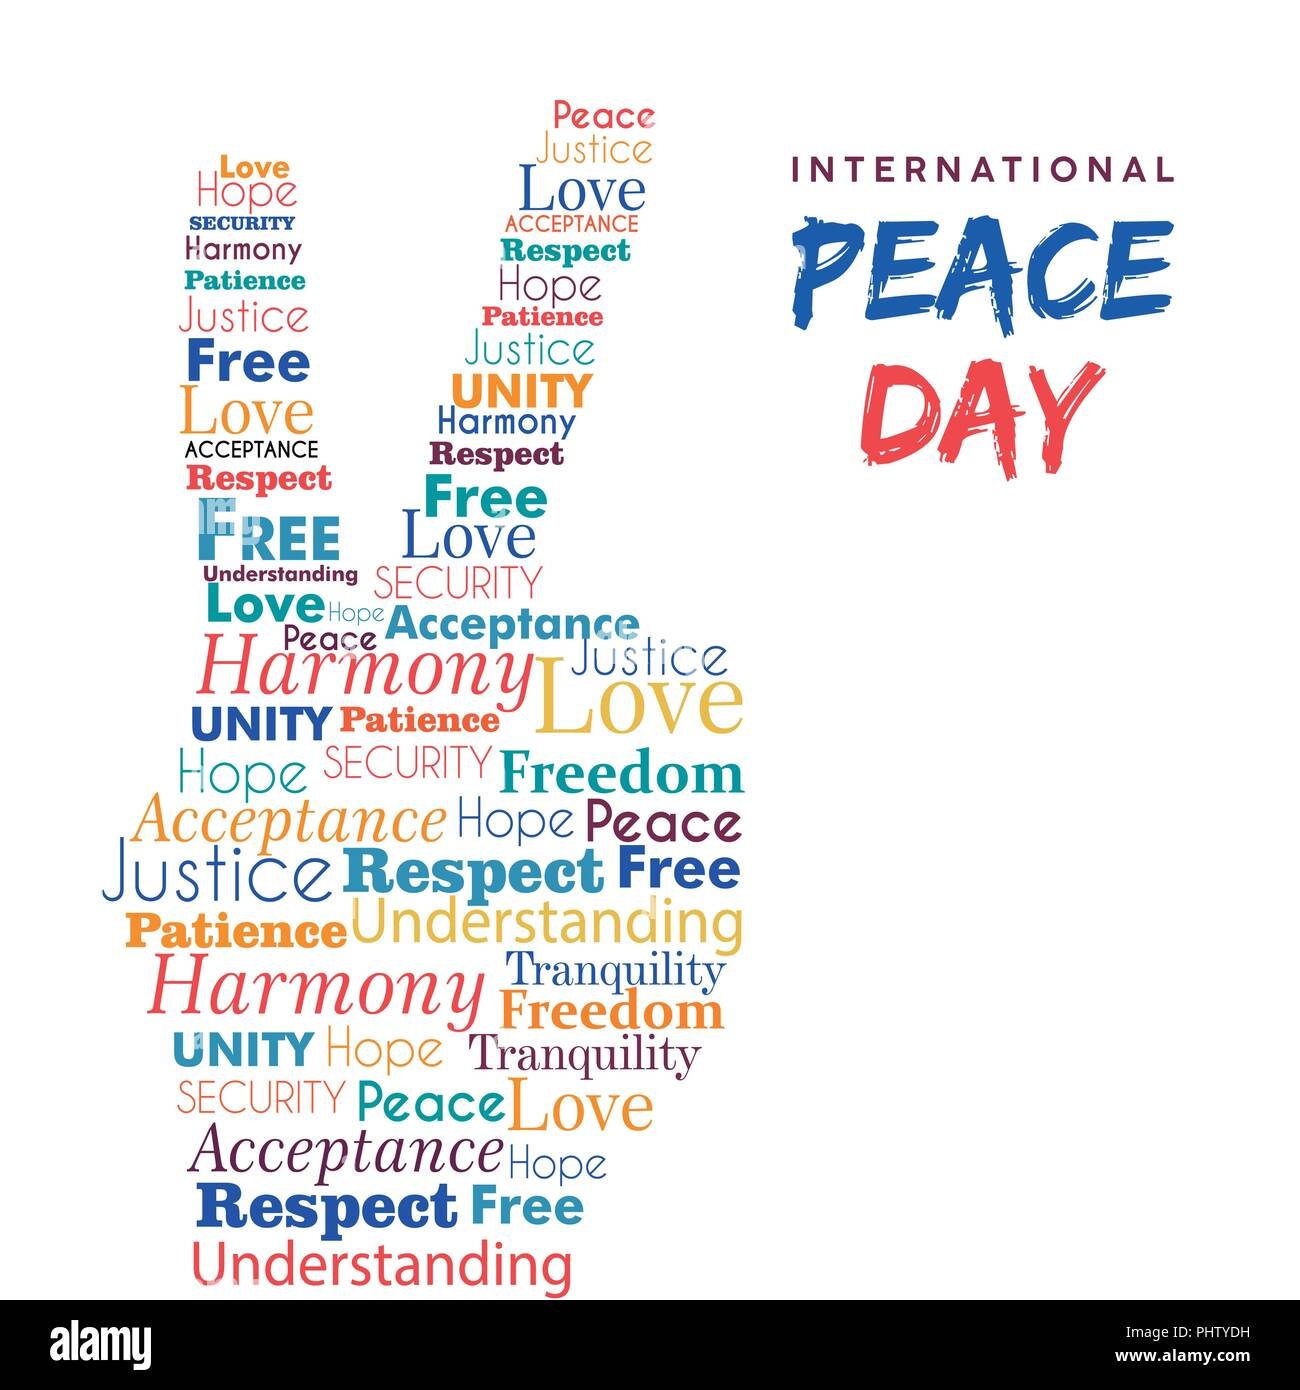 World Peace Day Illustration For International Freedom And Holiday